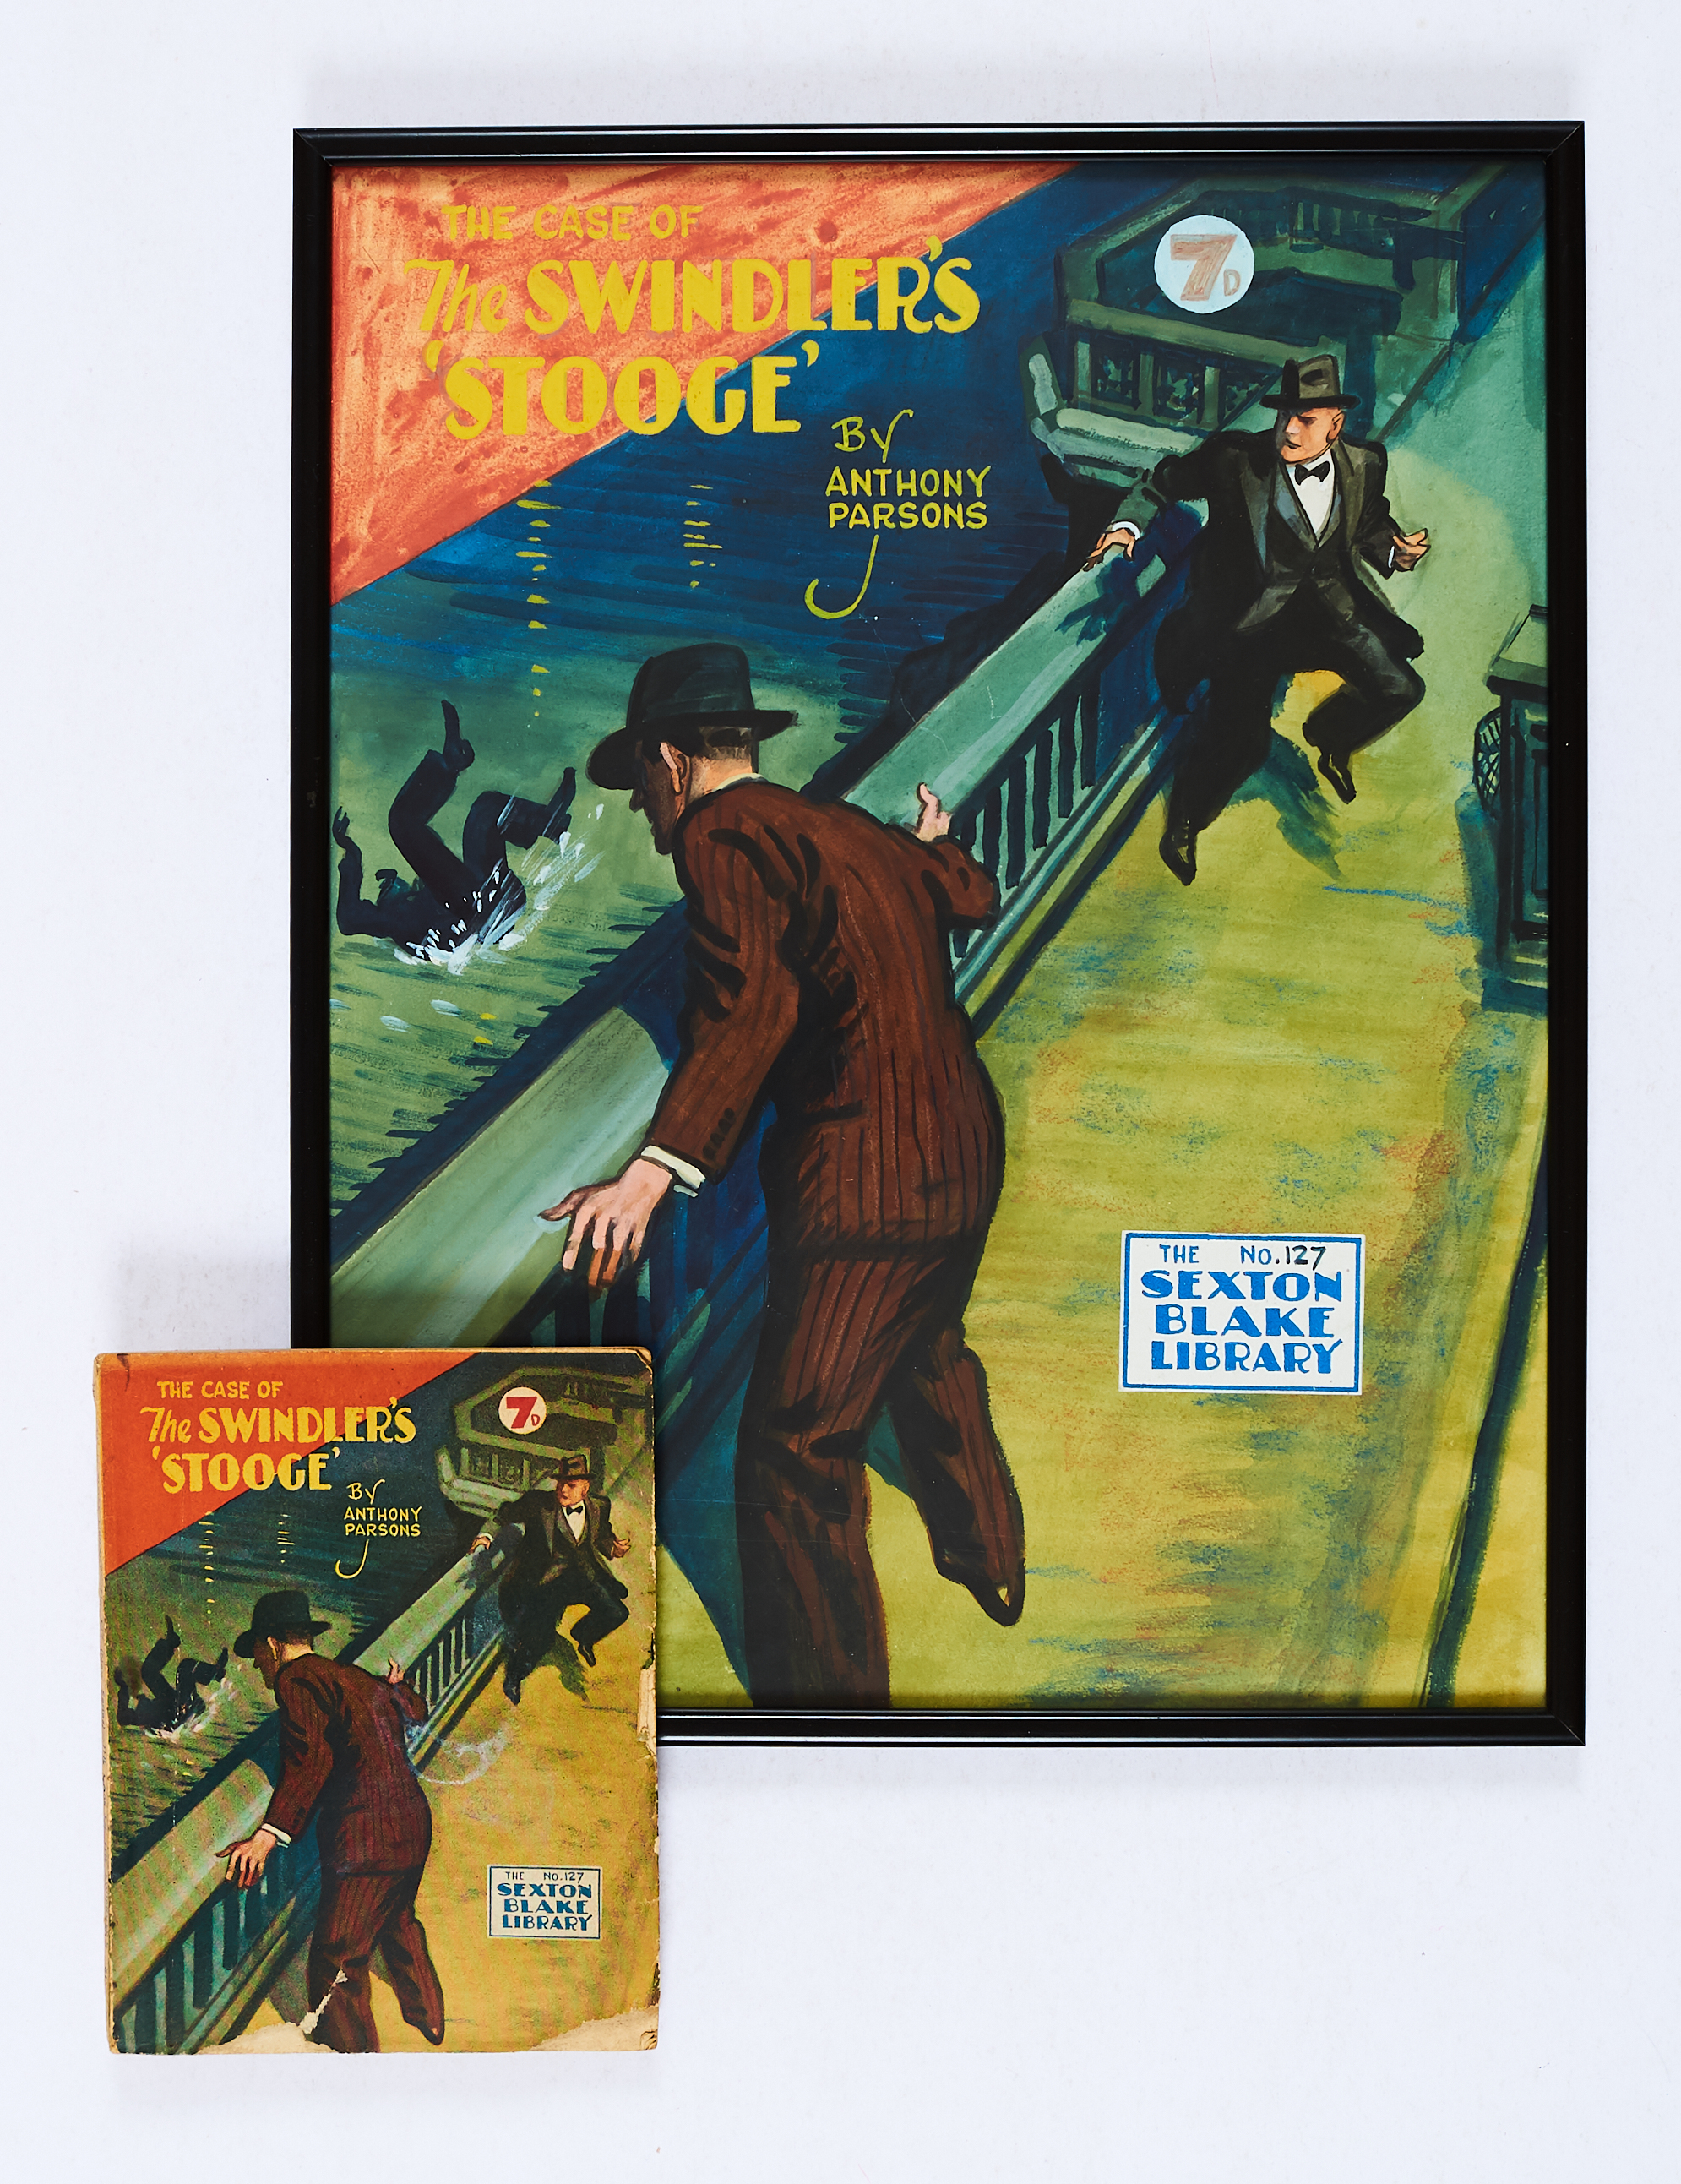 Lot 48 - The Swindler's Stooge original cover artwork (1947) by Eric Parker for Sexton Blake Library No